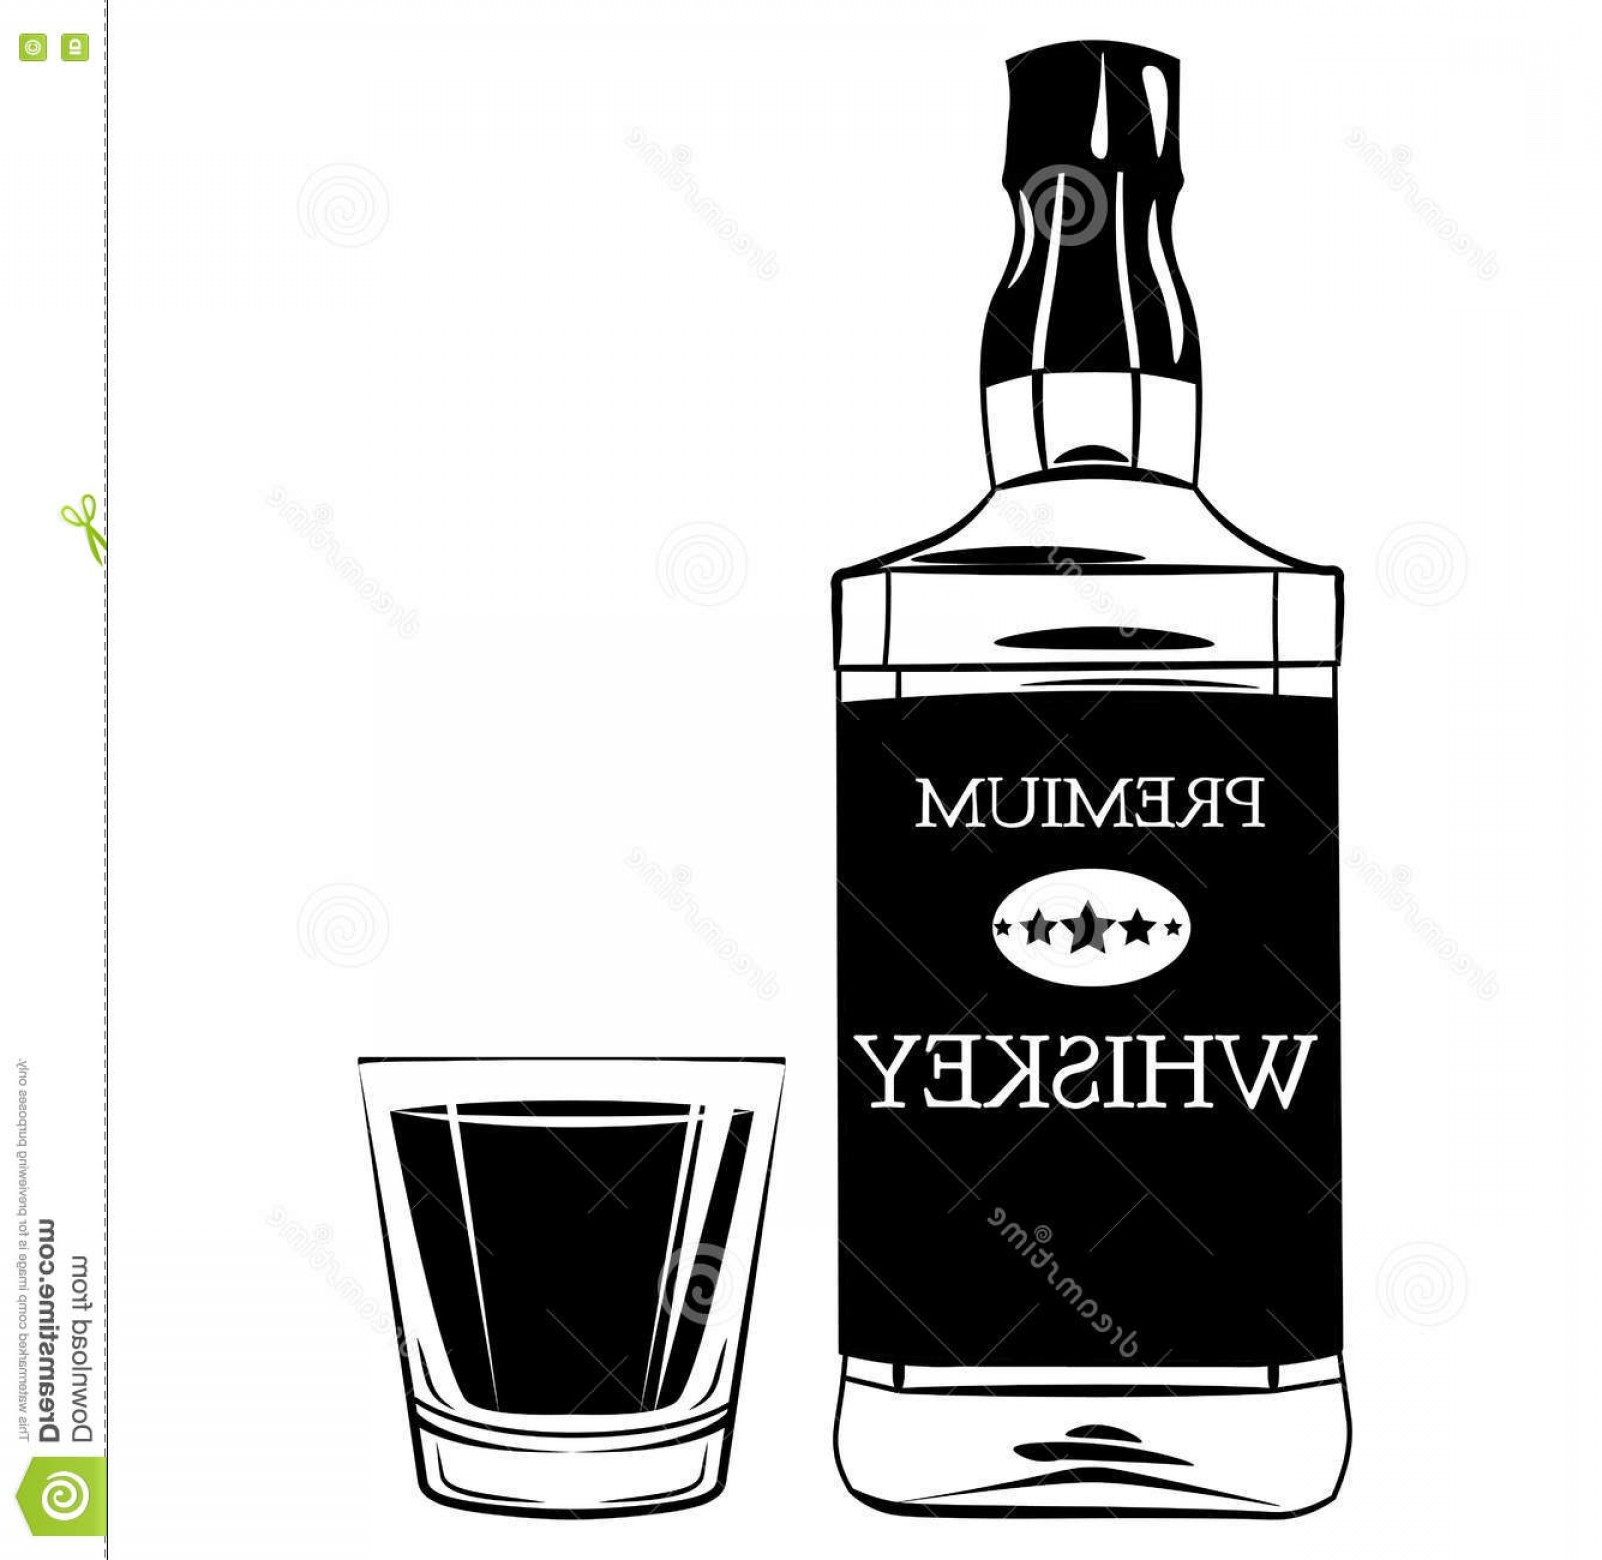 Booze Bottle Vector: Stock Illustration Whiskey Bottle Shot Glass Alcohol Drink Vintage Vector Elements Isolated White Background Image